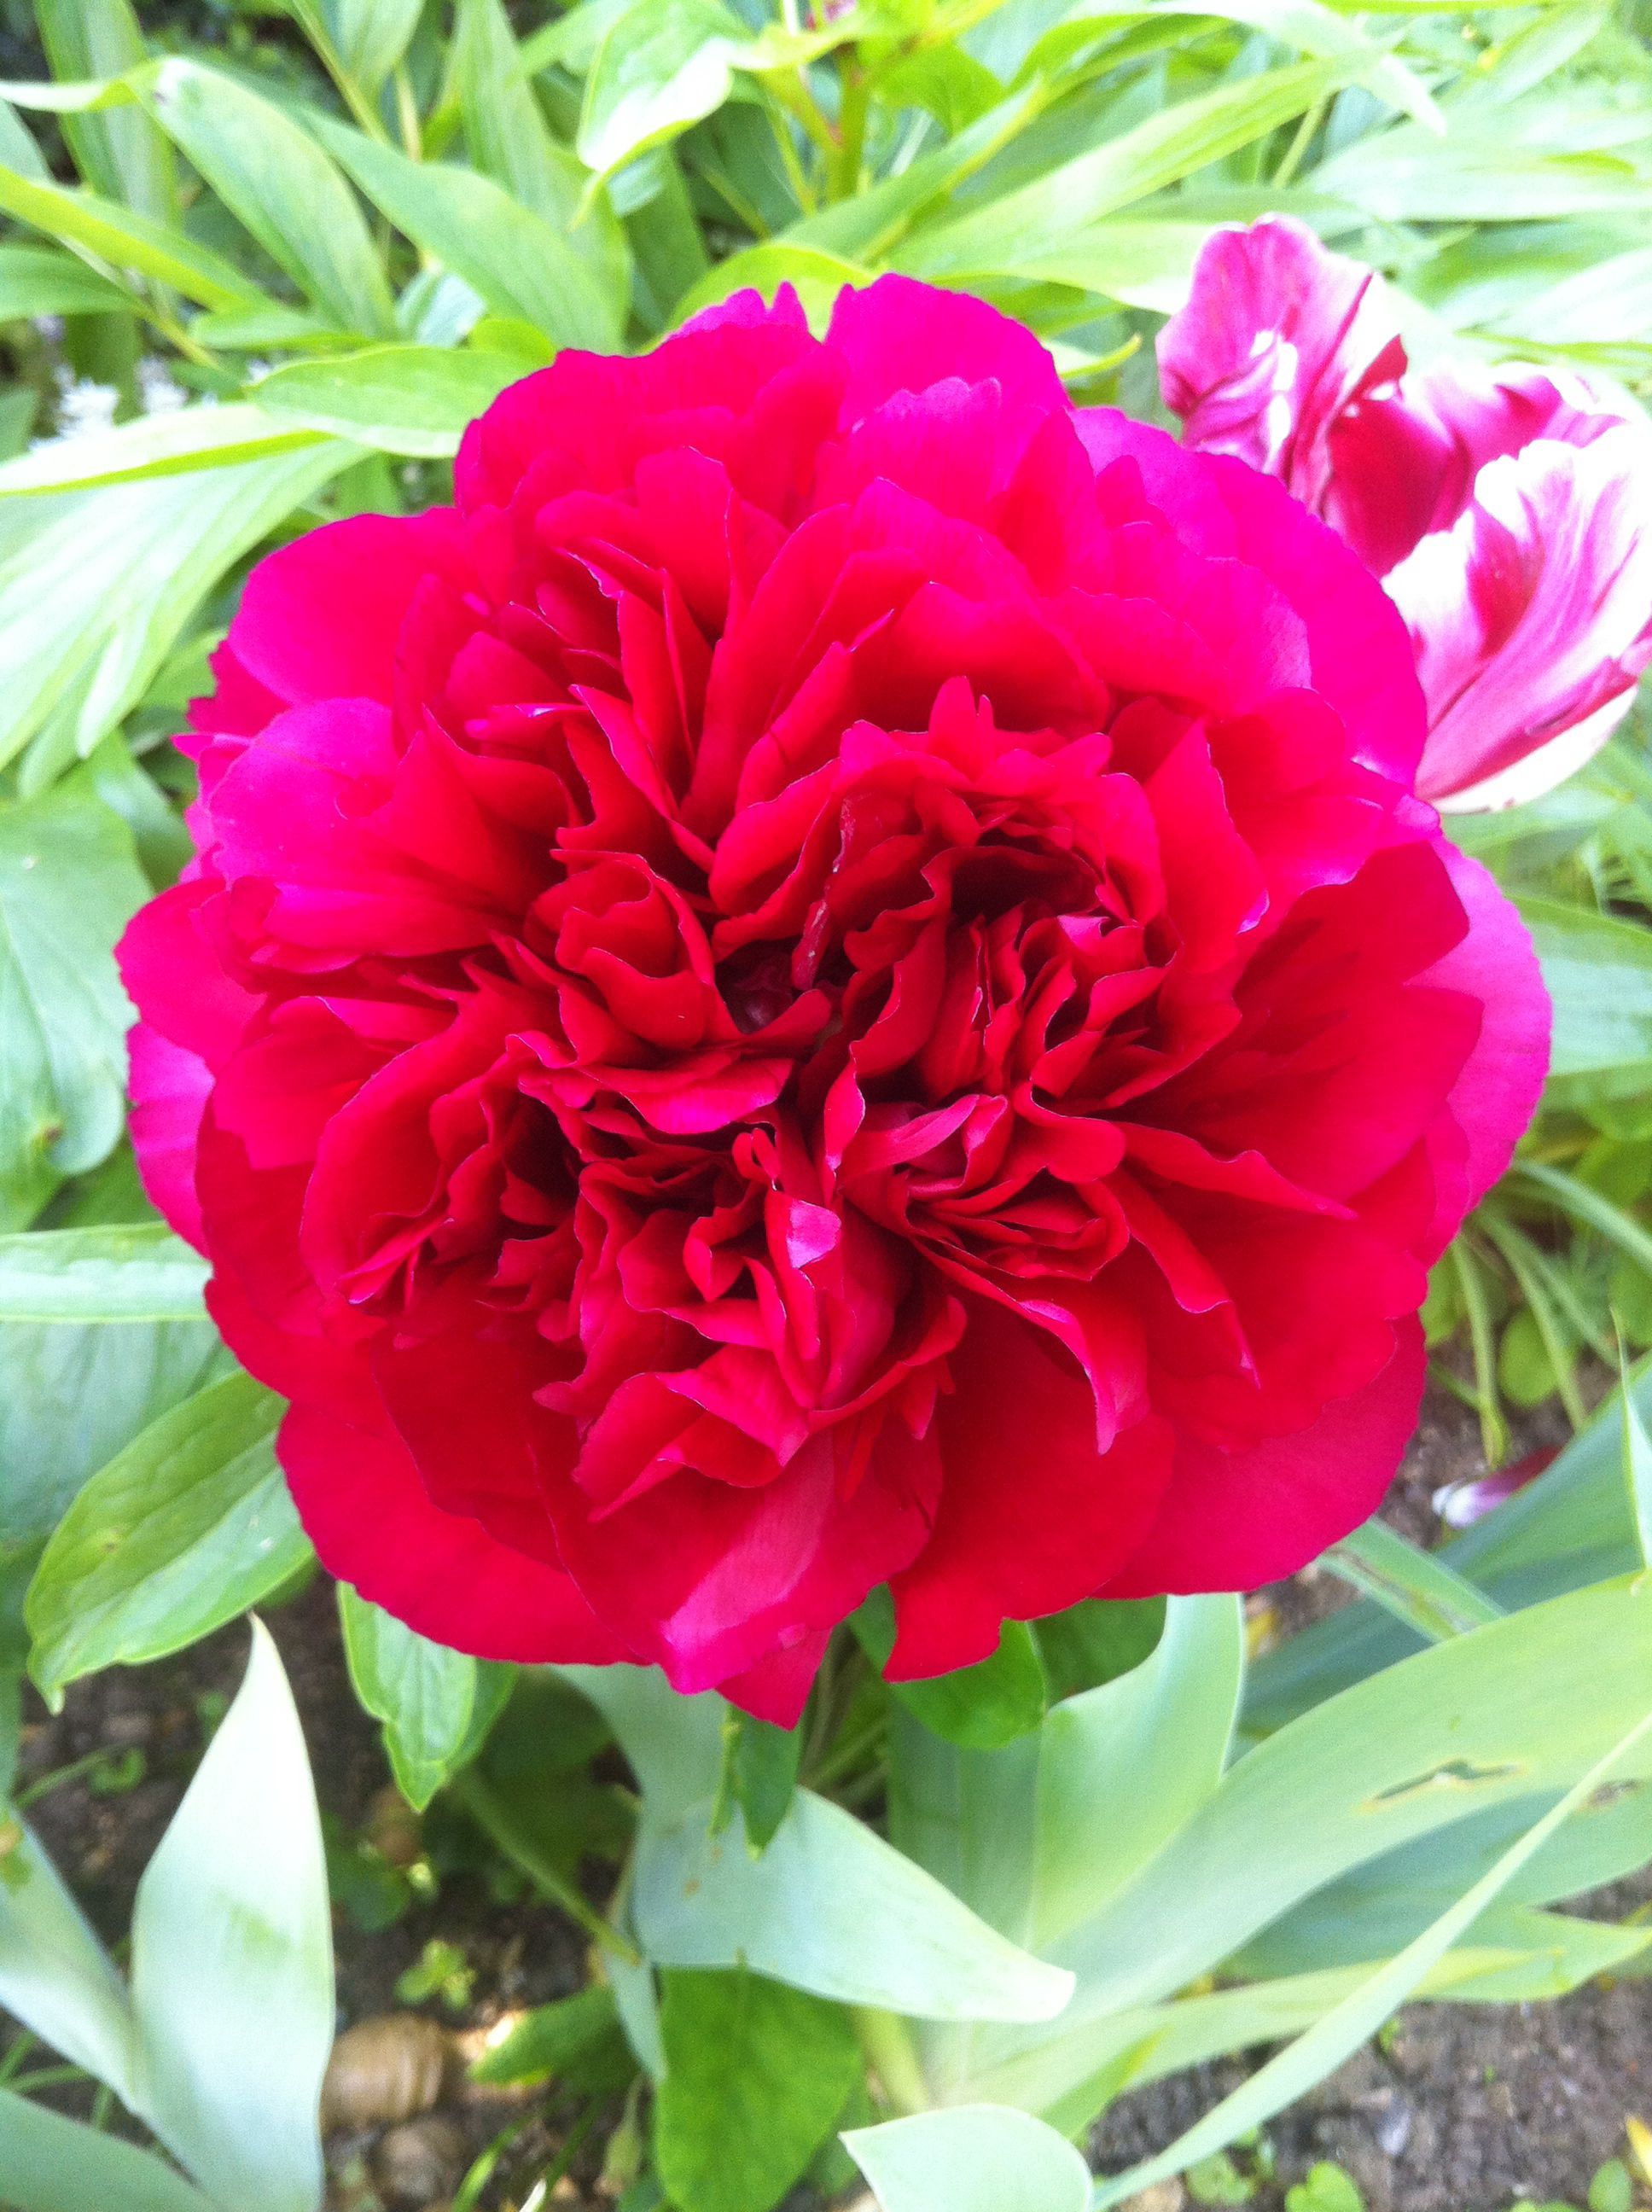 I love the colour of our Peonies - beautiful !